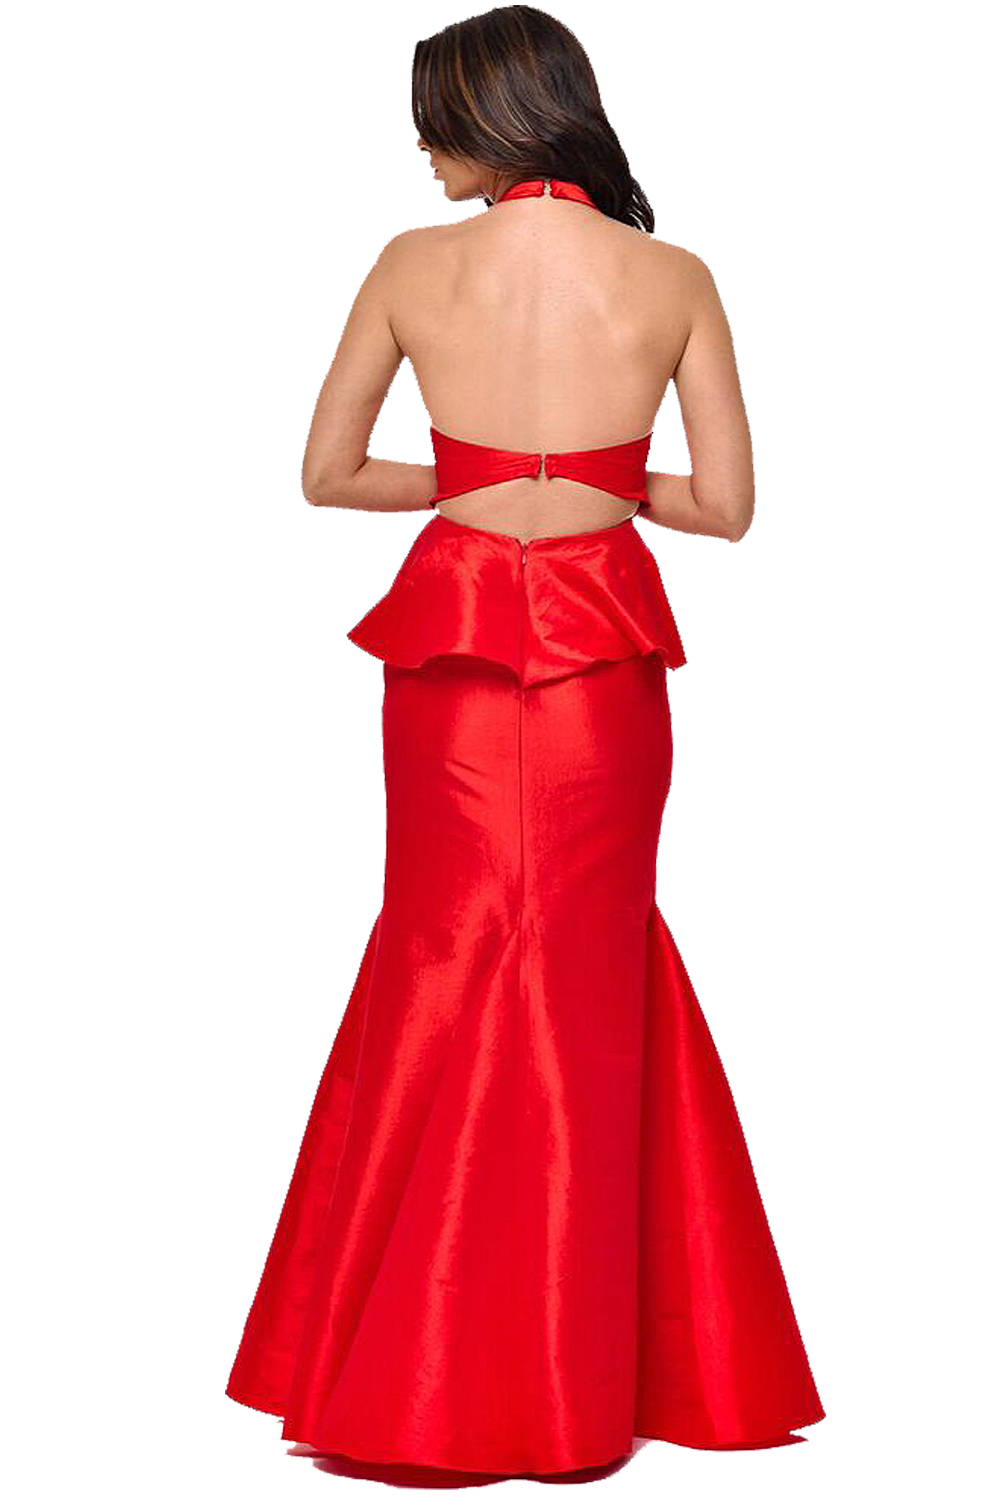 Red Backless Trumpet Maxi Prom Dress | Red Carpet Prom ...